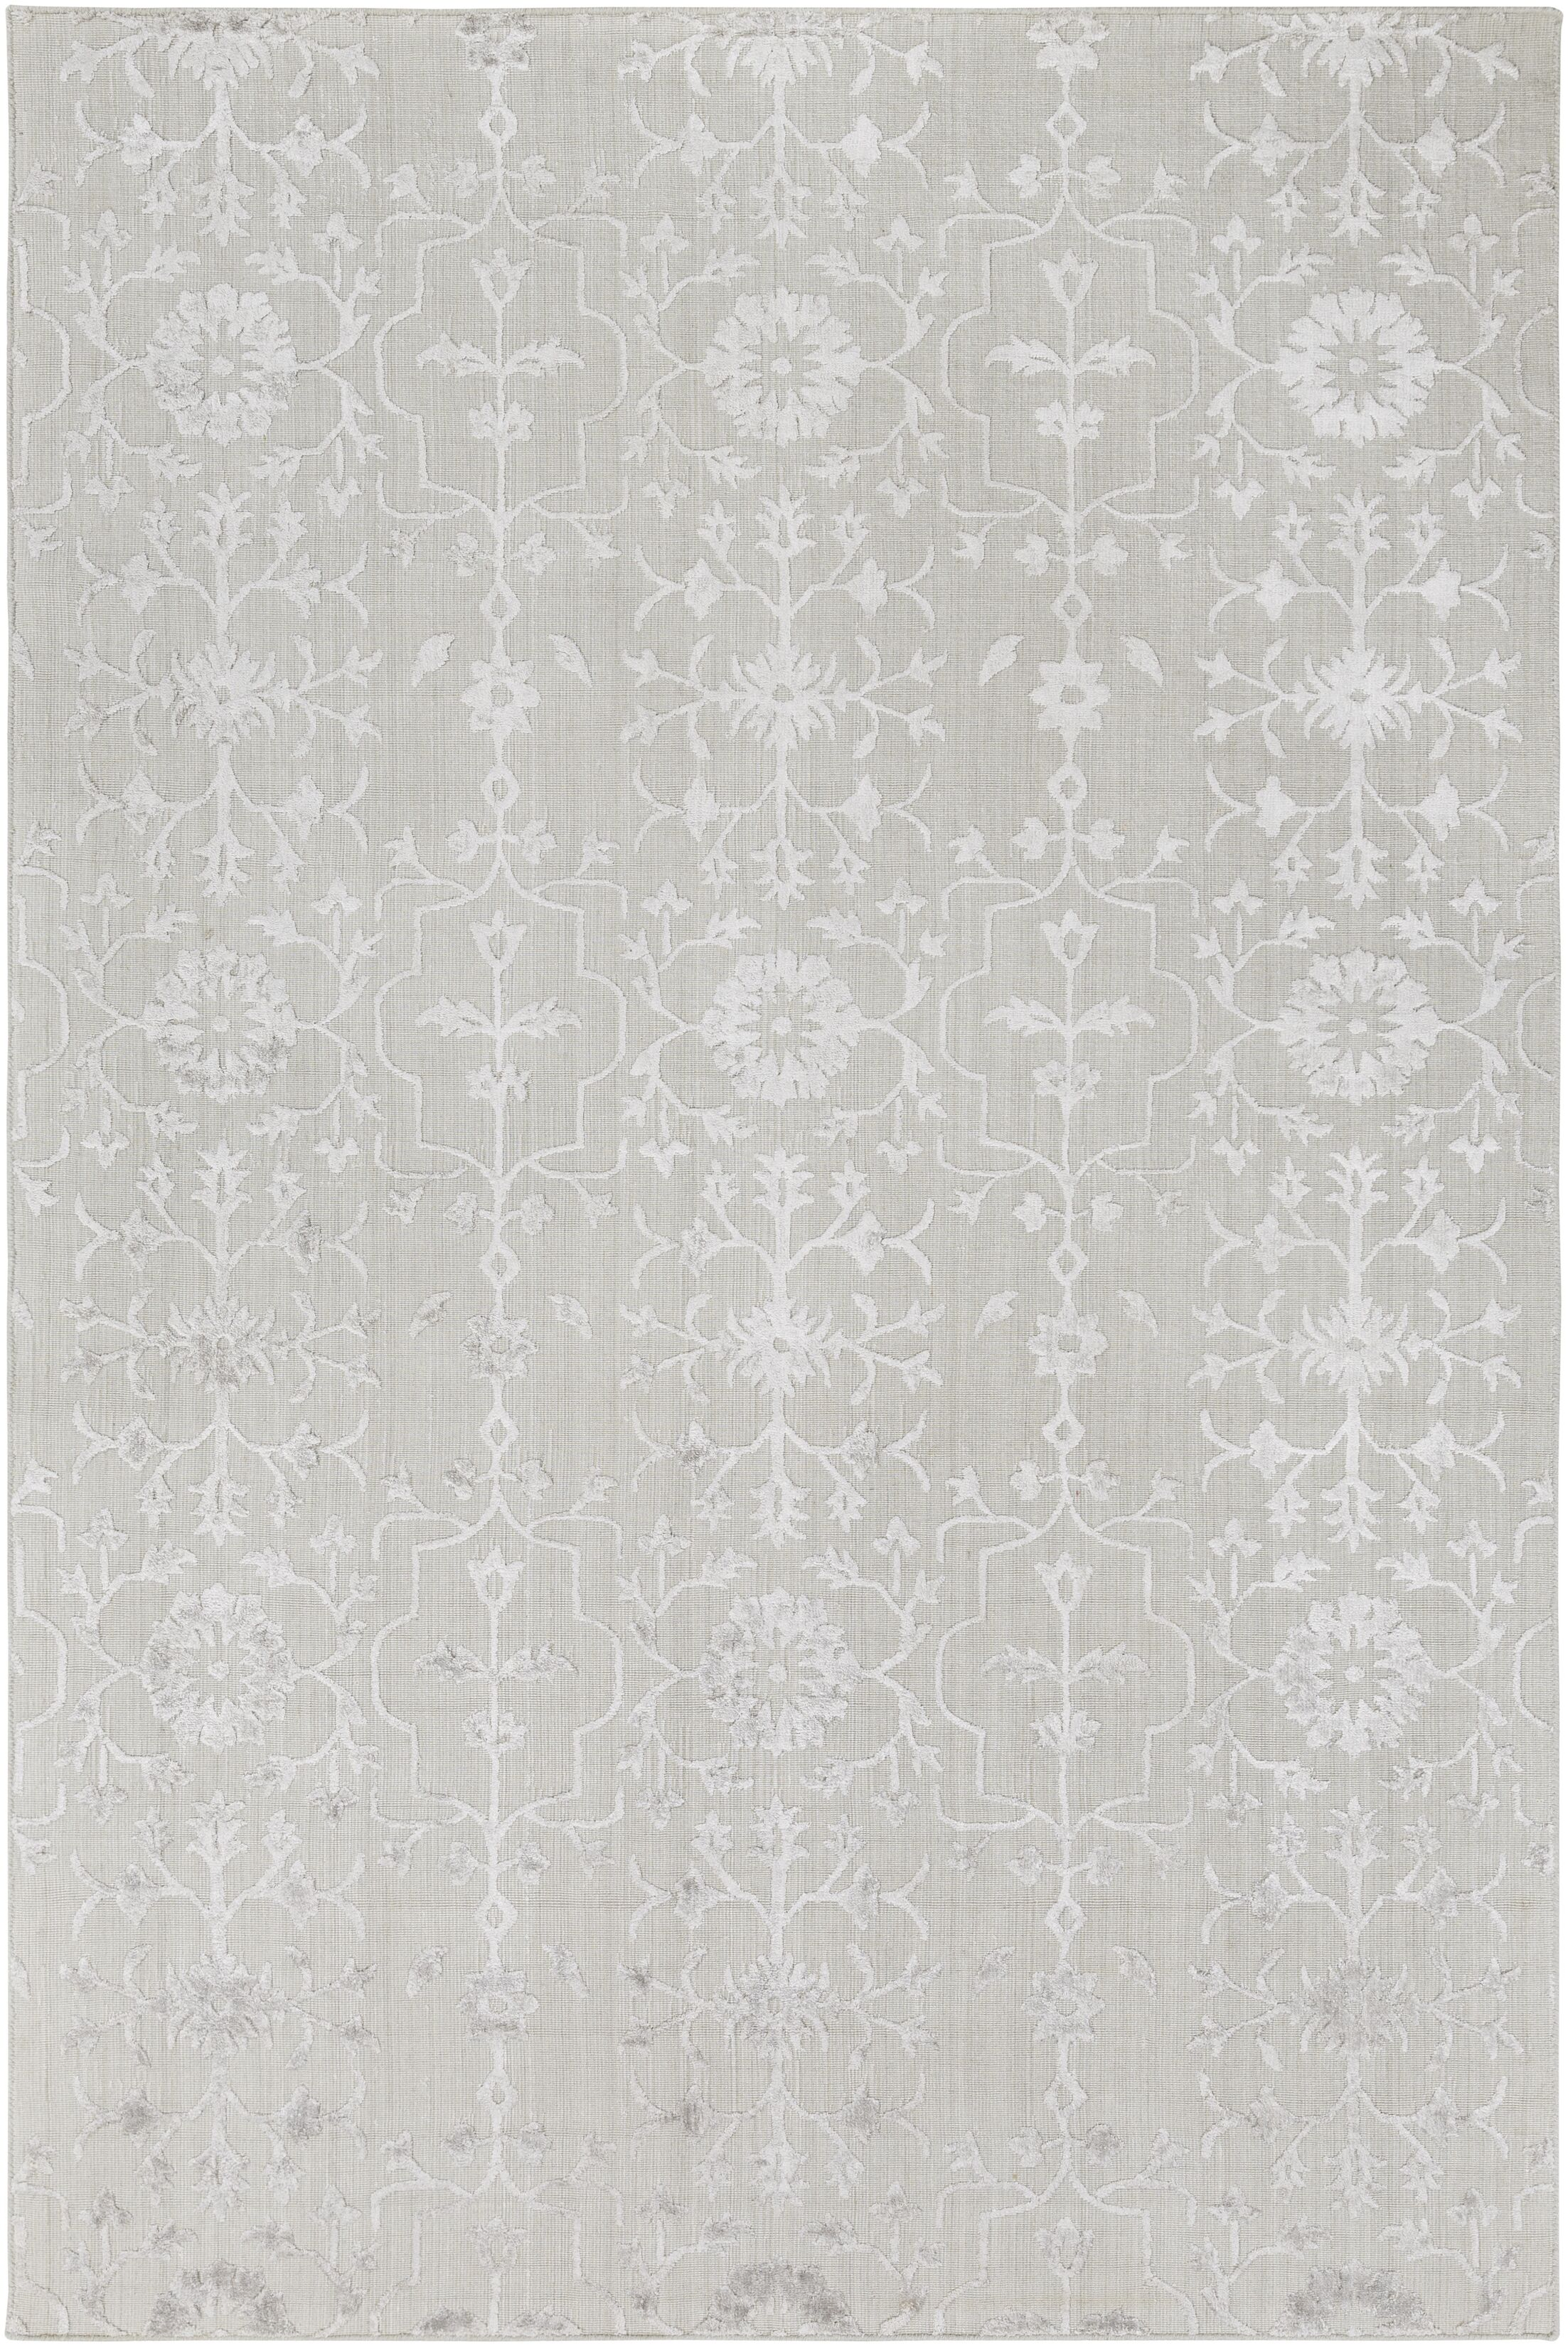 Poirier Hand-Knotted Light Gray Area Rug Rug Size: Rectangle 2' x 3'